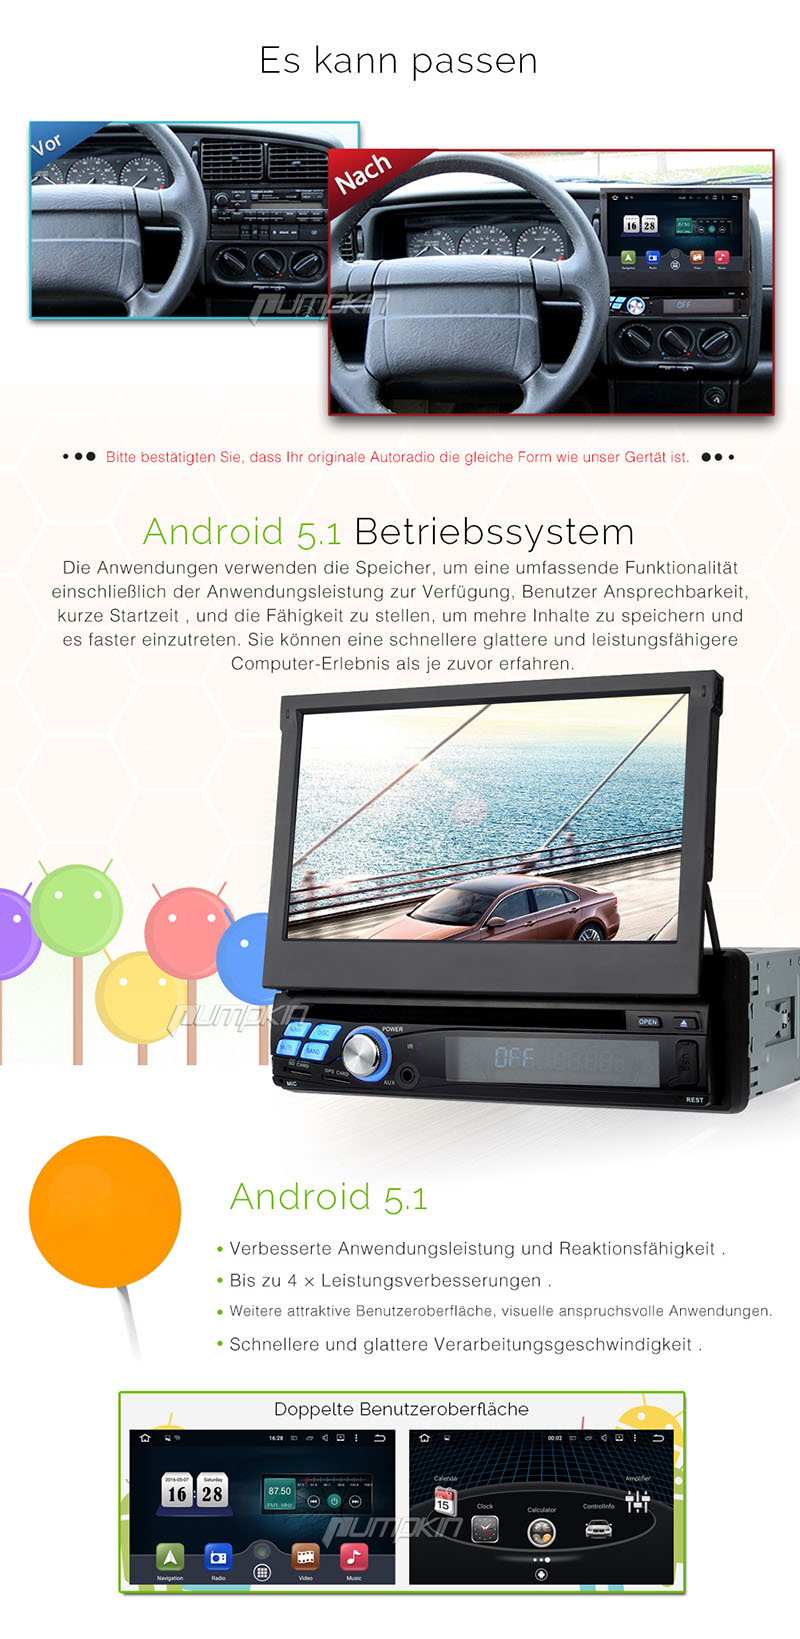 7 1 din autoradio gps dvd cd android 5 1 in seuzach kaufen. Black Bedroom Furniture Sets. Home Design Ideas